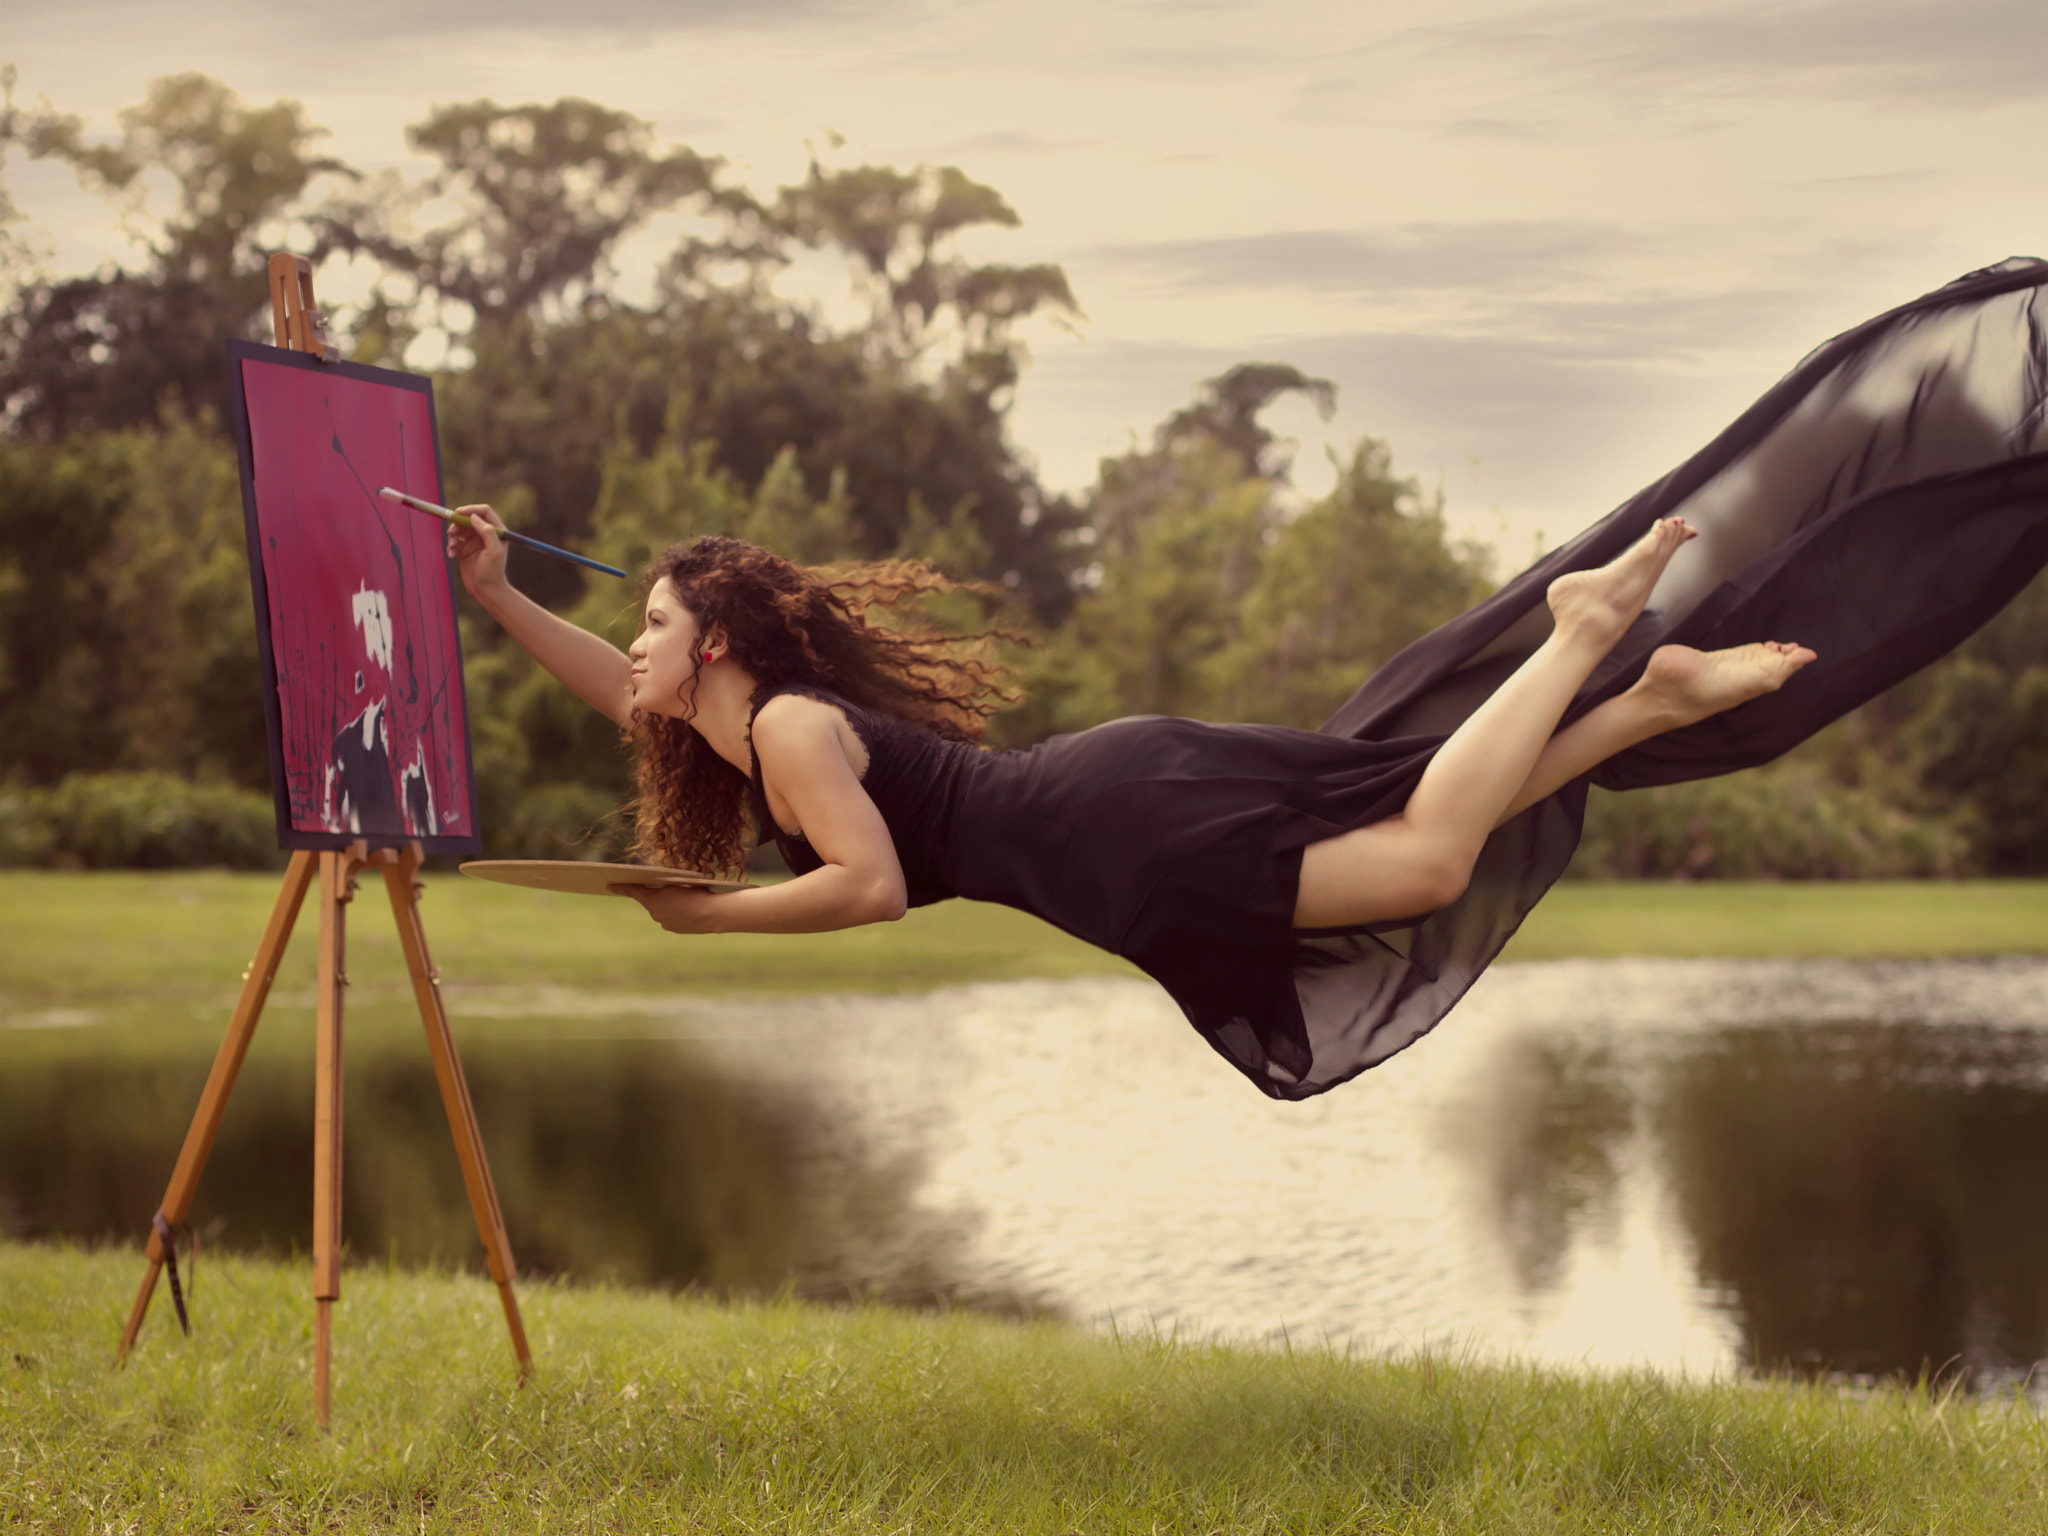 Photograph The Weightlessness of an Artist's Soul by Omalix  on 500px